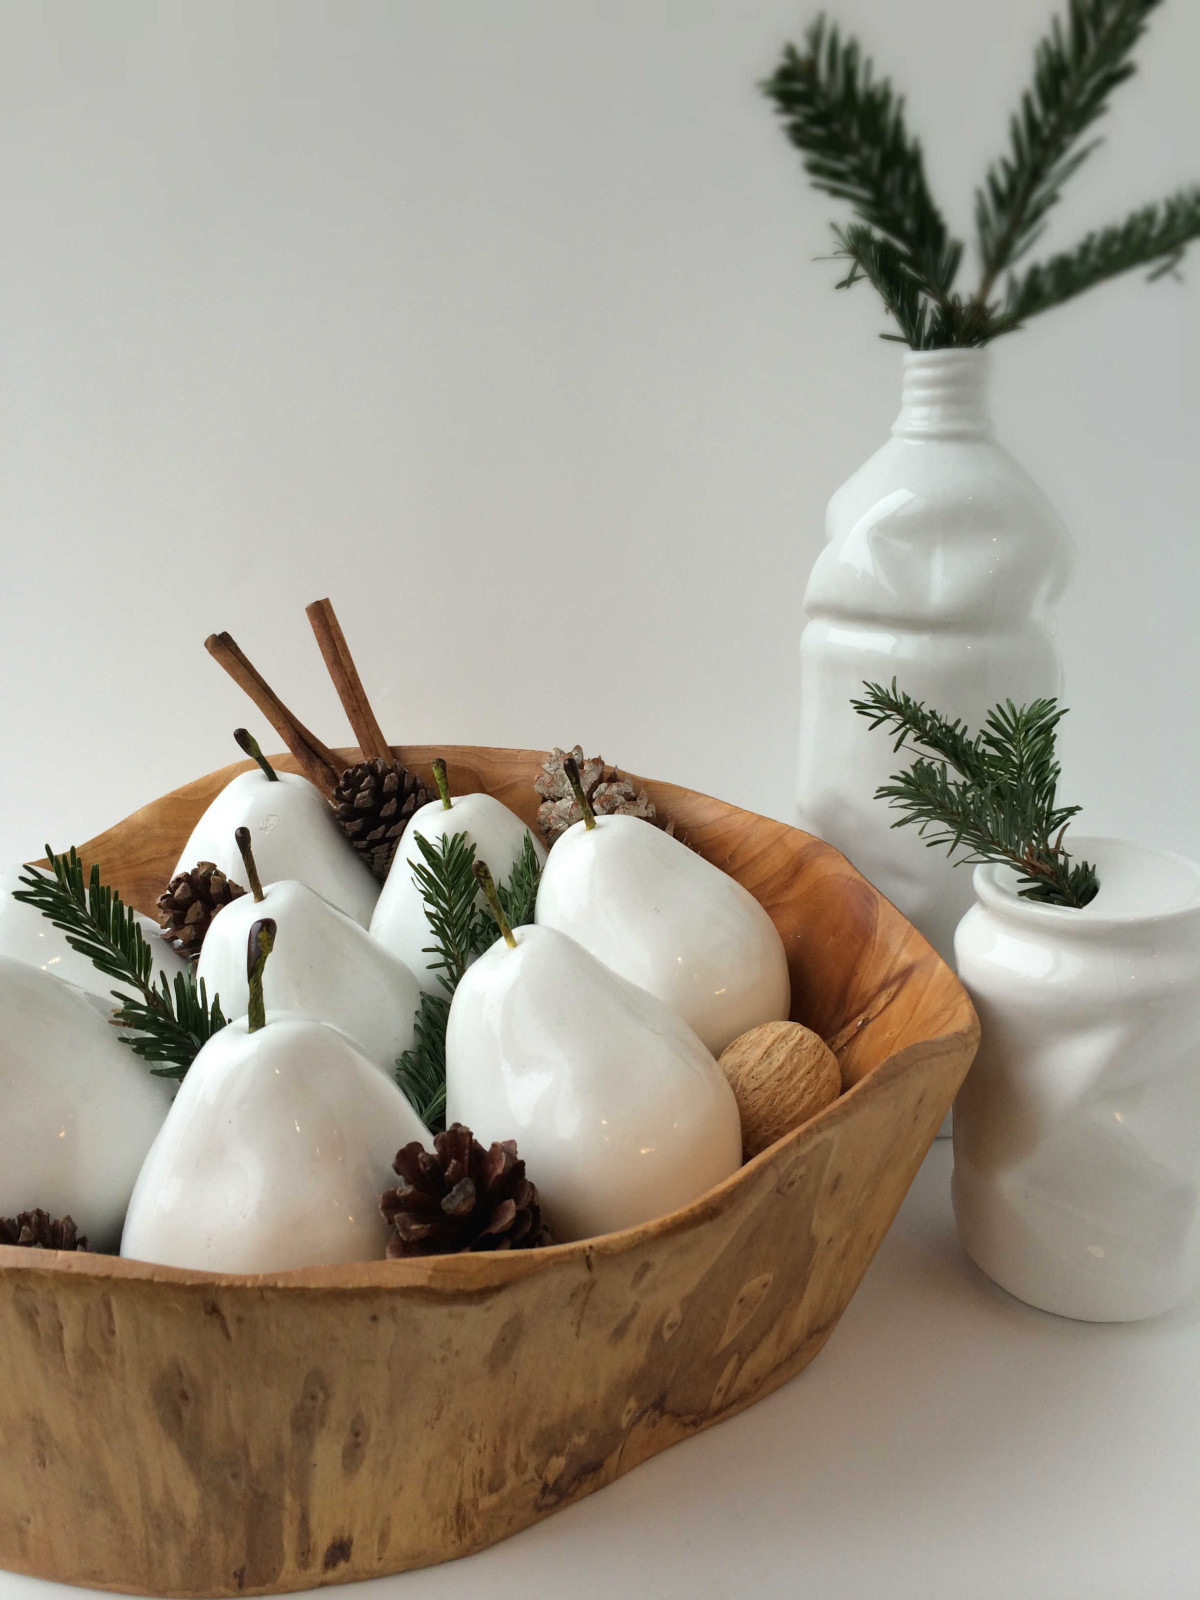 How To Dress Your All Season Modern Decorations For The Holidays